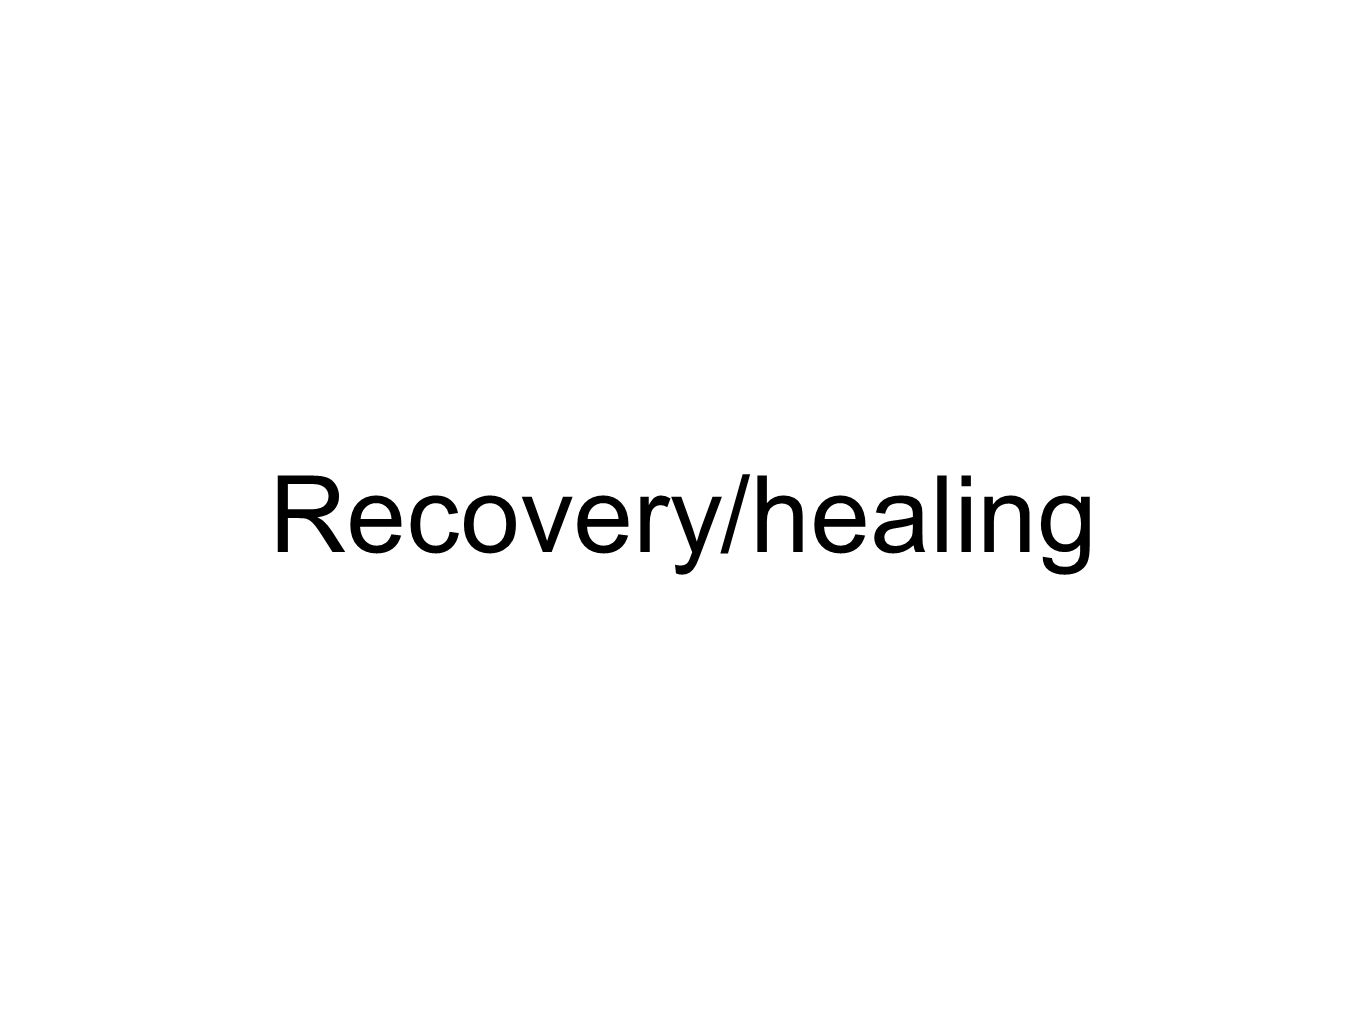 Recovery/healing